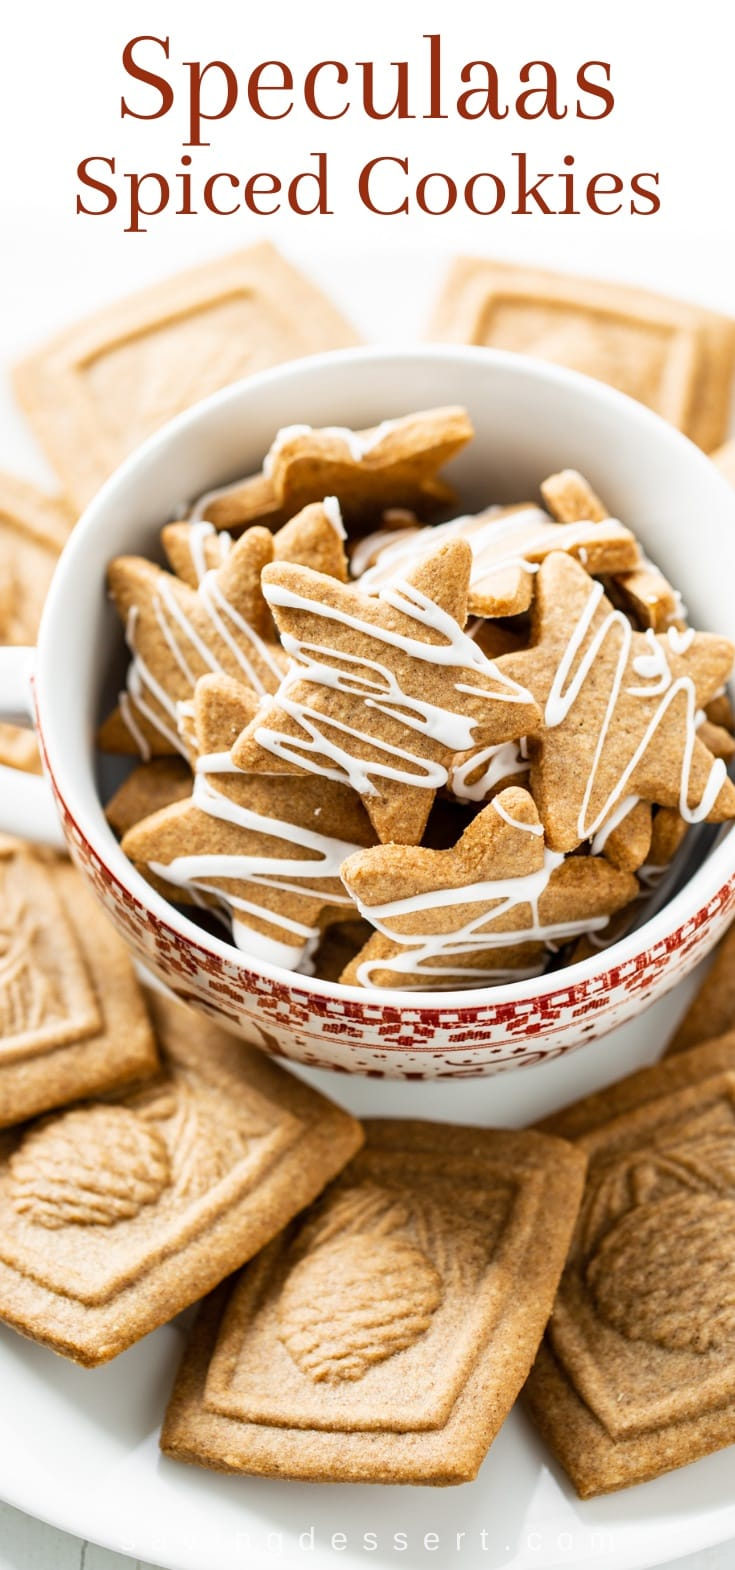 A bowl of spiced star cookies topped with a drizzle of icing